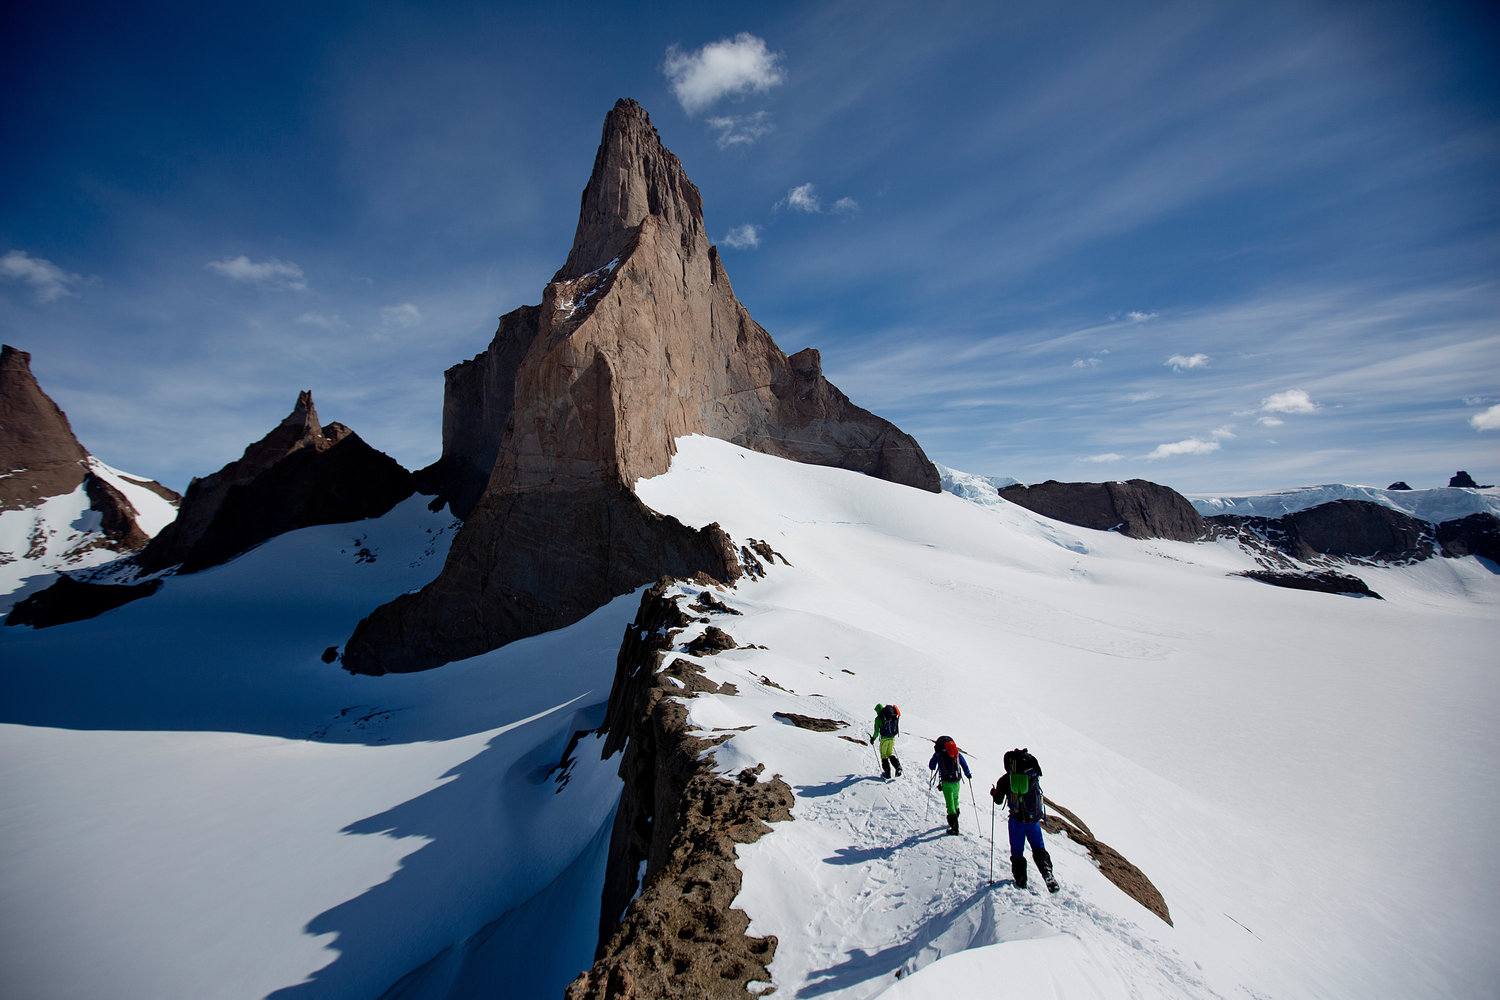 Ulvetanna Peak (the wolf's tooth), Antarctica